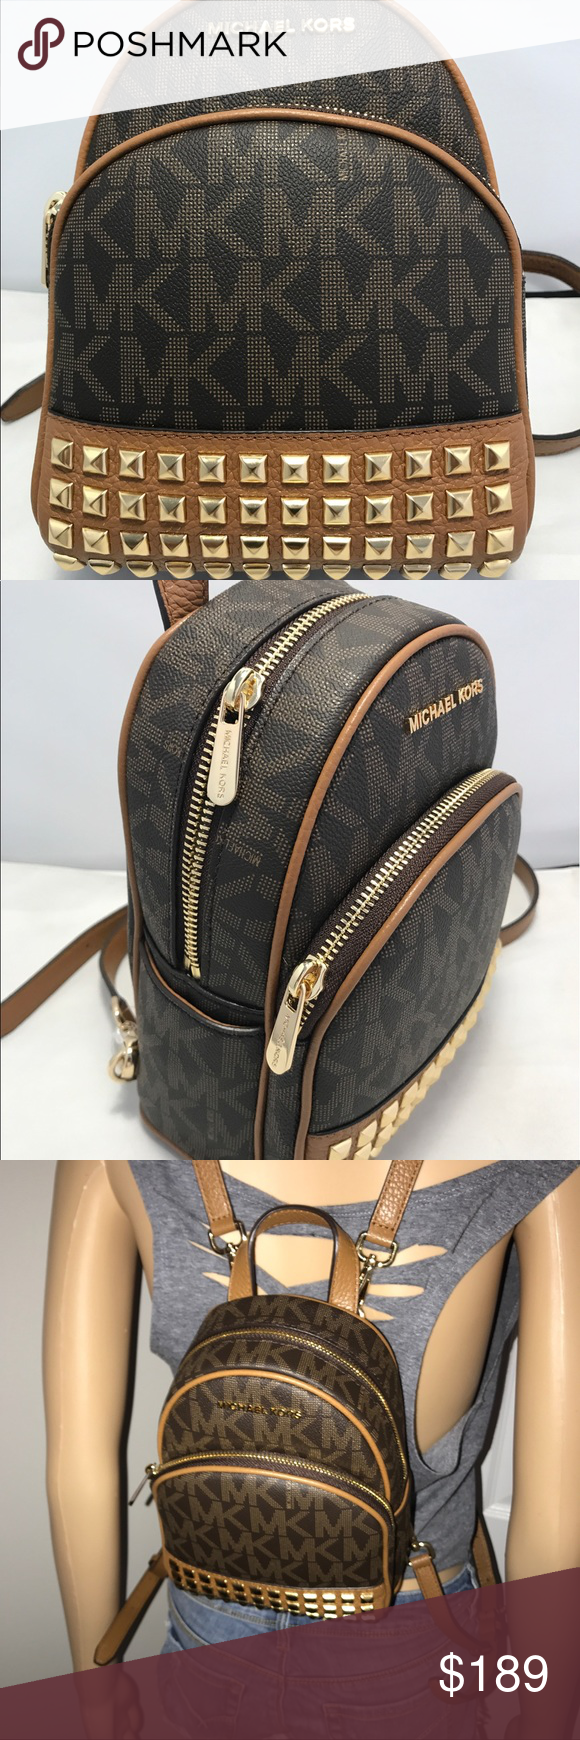 90c4112a15 Michael Kors Abbey Xs Backpack to Crossbody Bag Michael Kors Signature  Abbey Extra Small Backpack Cross body Msrp 348.00 New with Tags - Brown    Acorn Chic ...